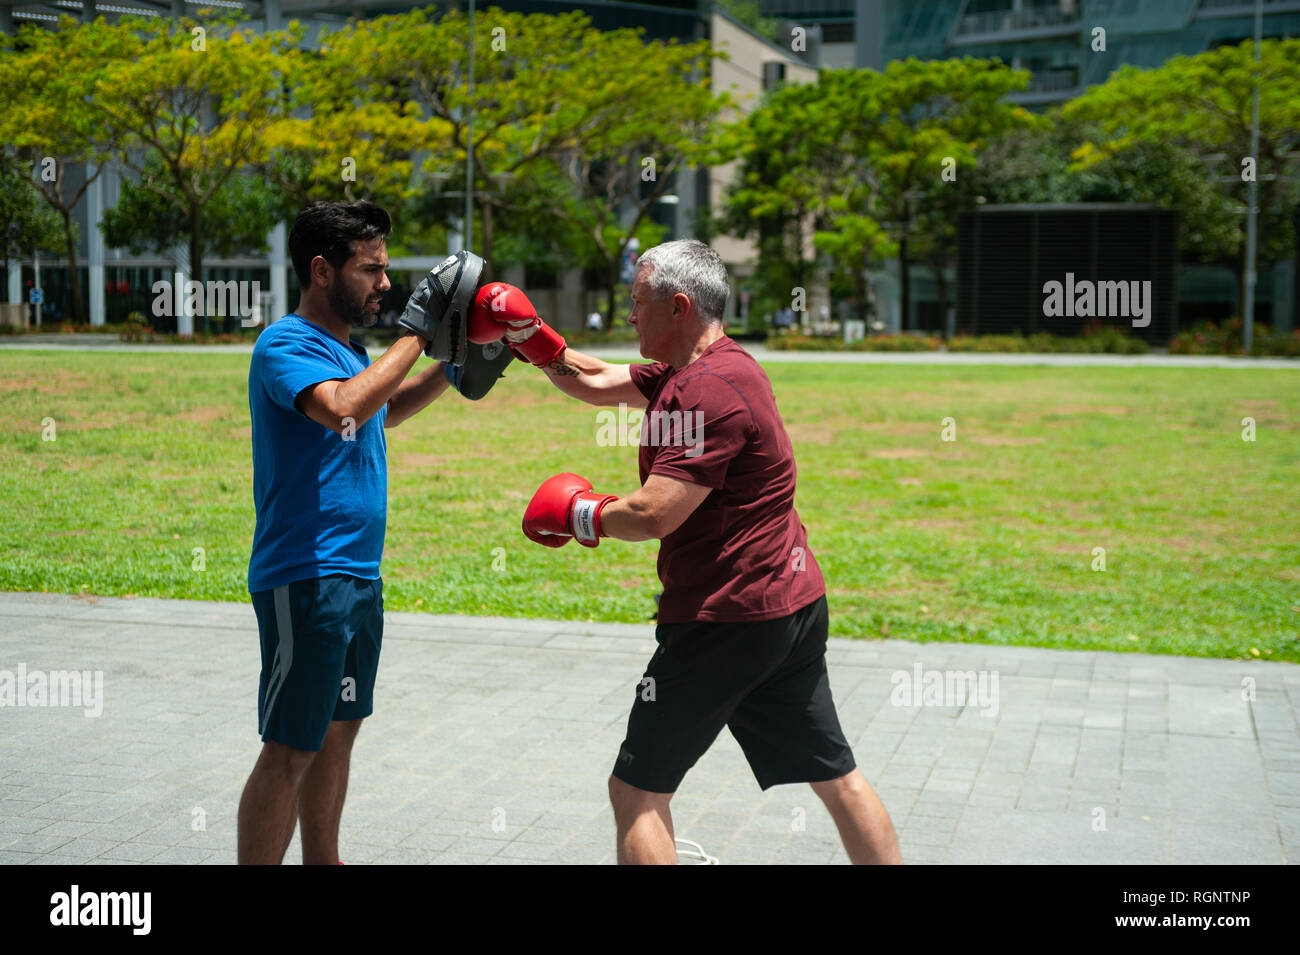 18.04.2018, Singapore, Republic of Singapore, Asia - Two men are seen working out during their lunch break in the central business district. - Stock Image